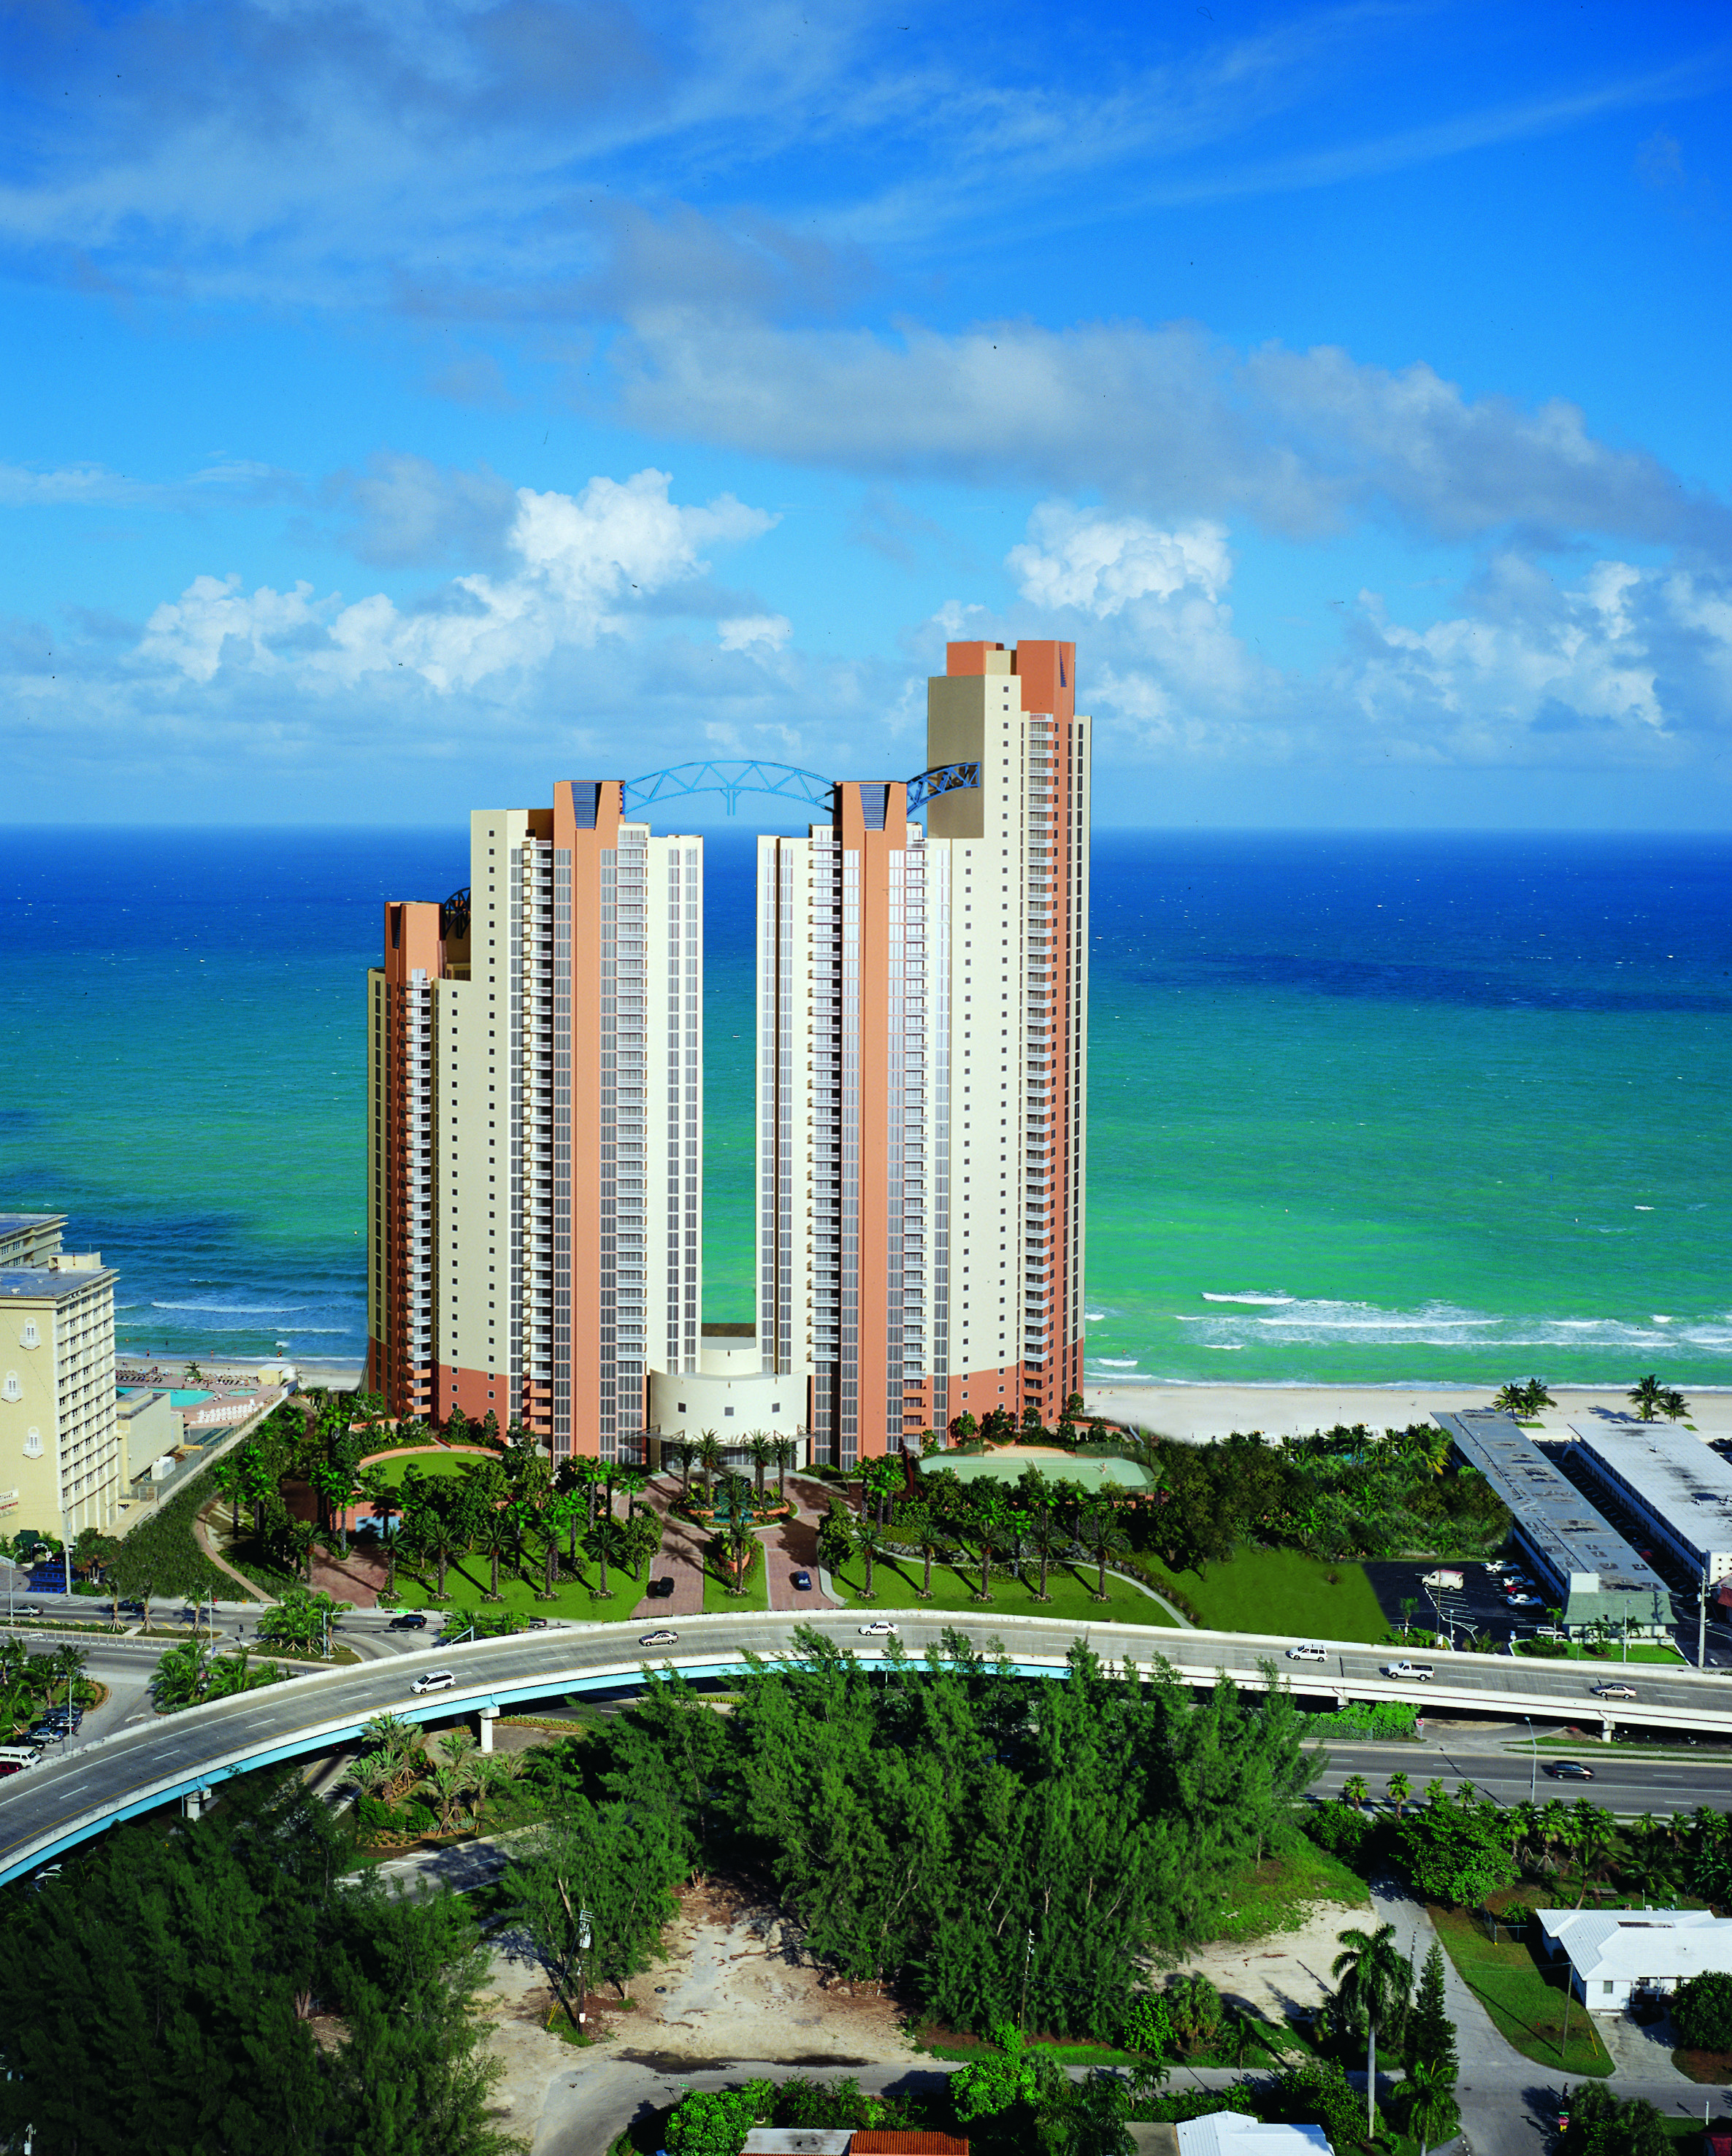 Ocean One | Developer: The Related Group | Architect: Sieger Suarez